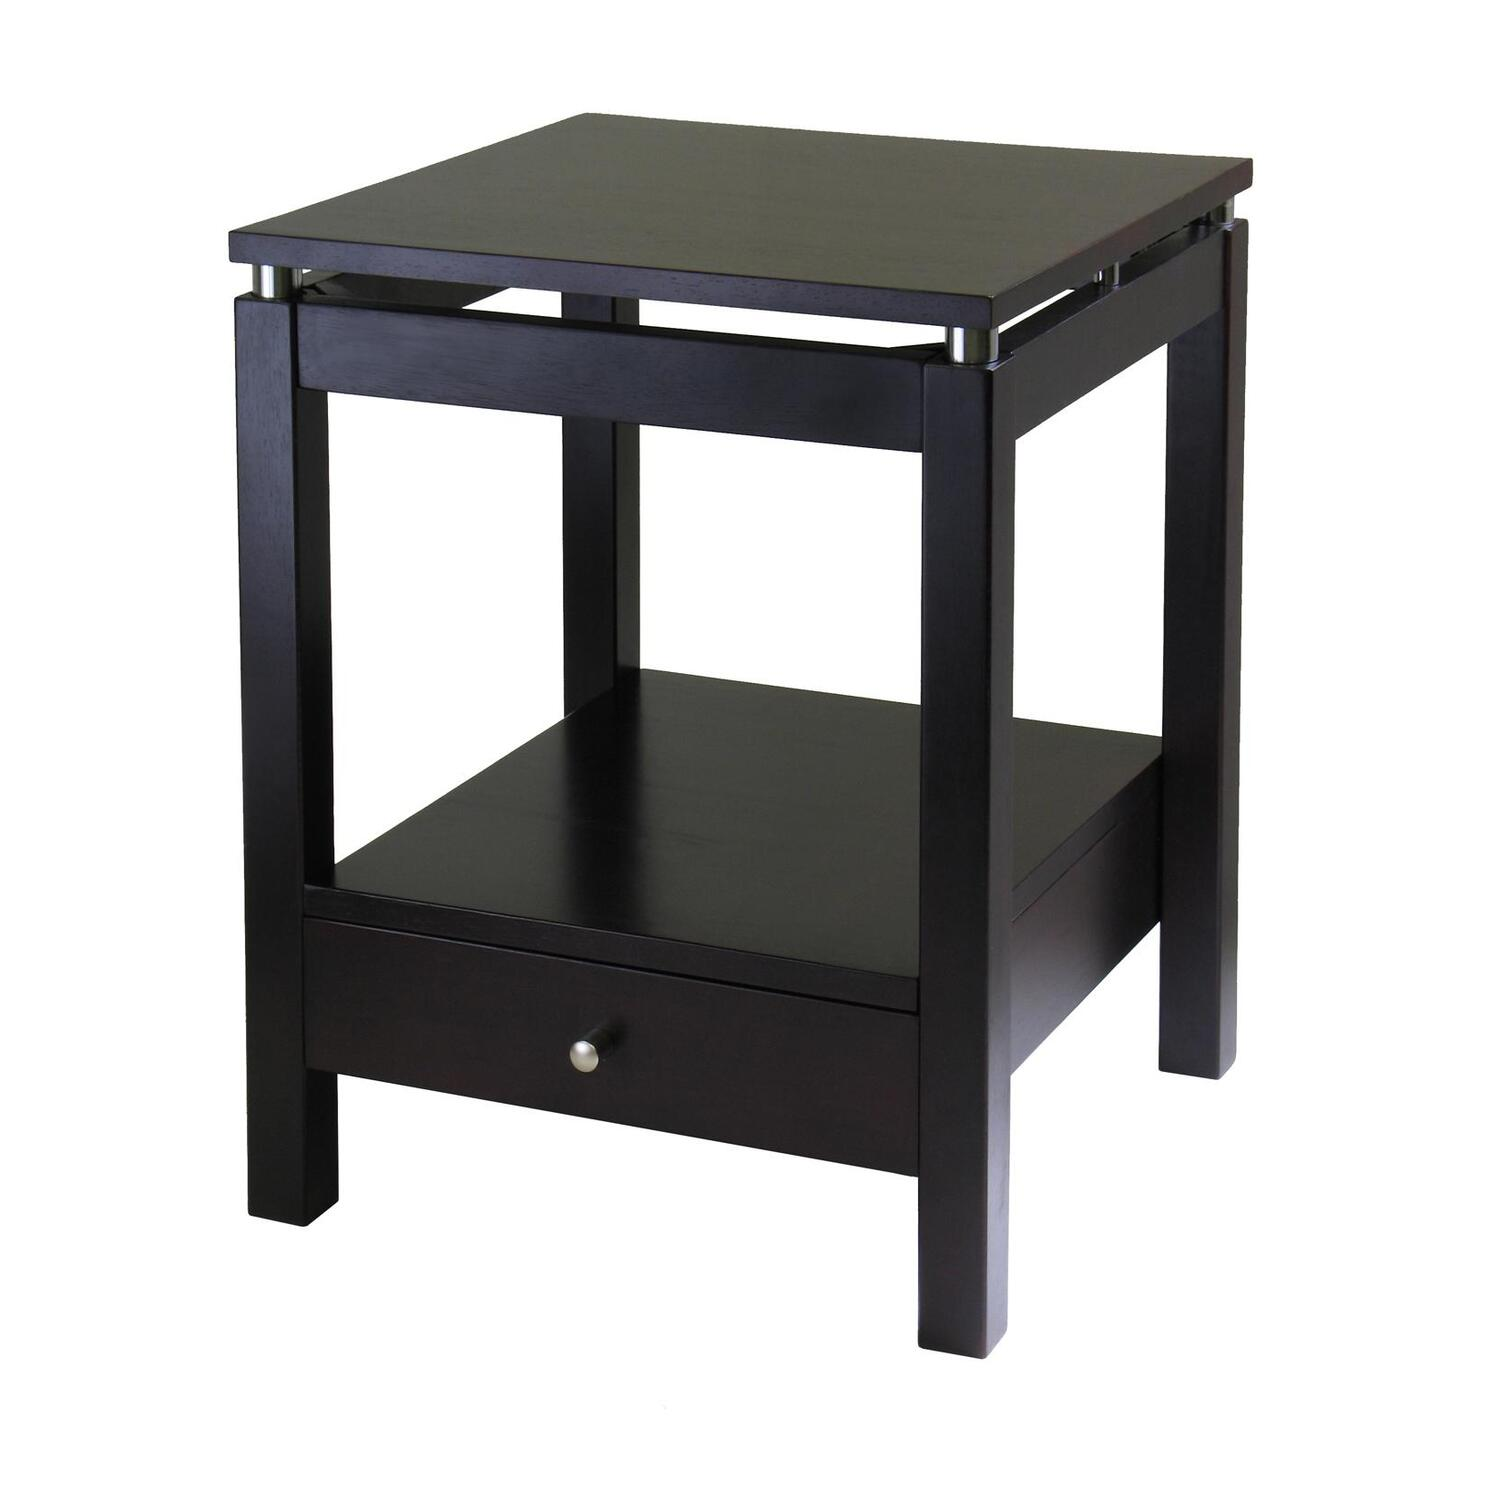 Winsome Linea Night Stand By Oj Commerce 92919 158 99